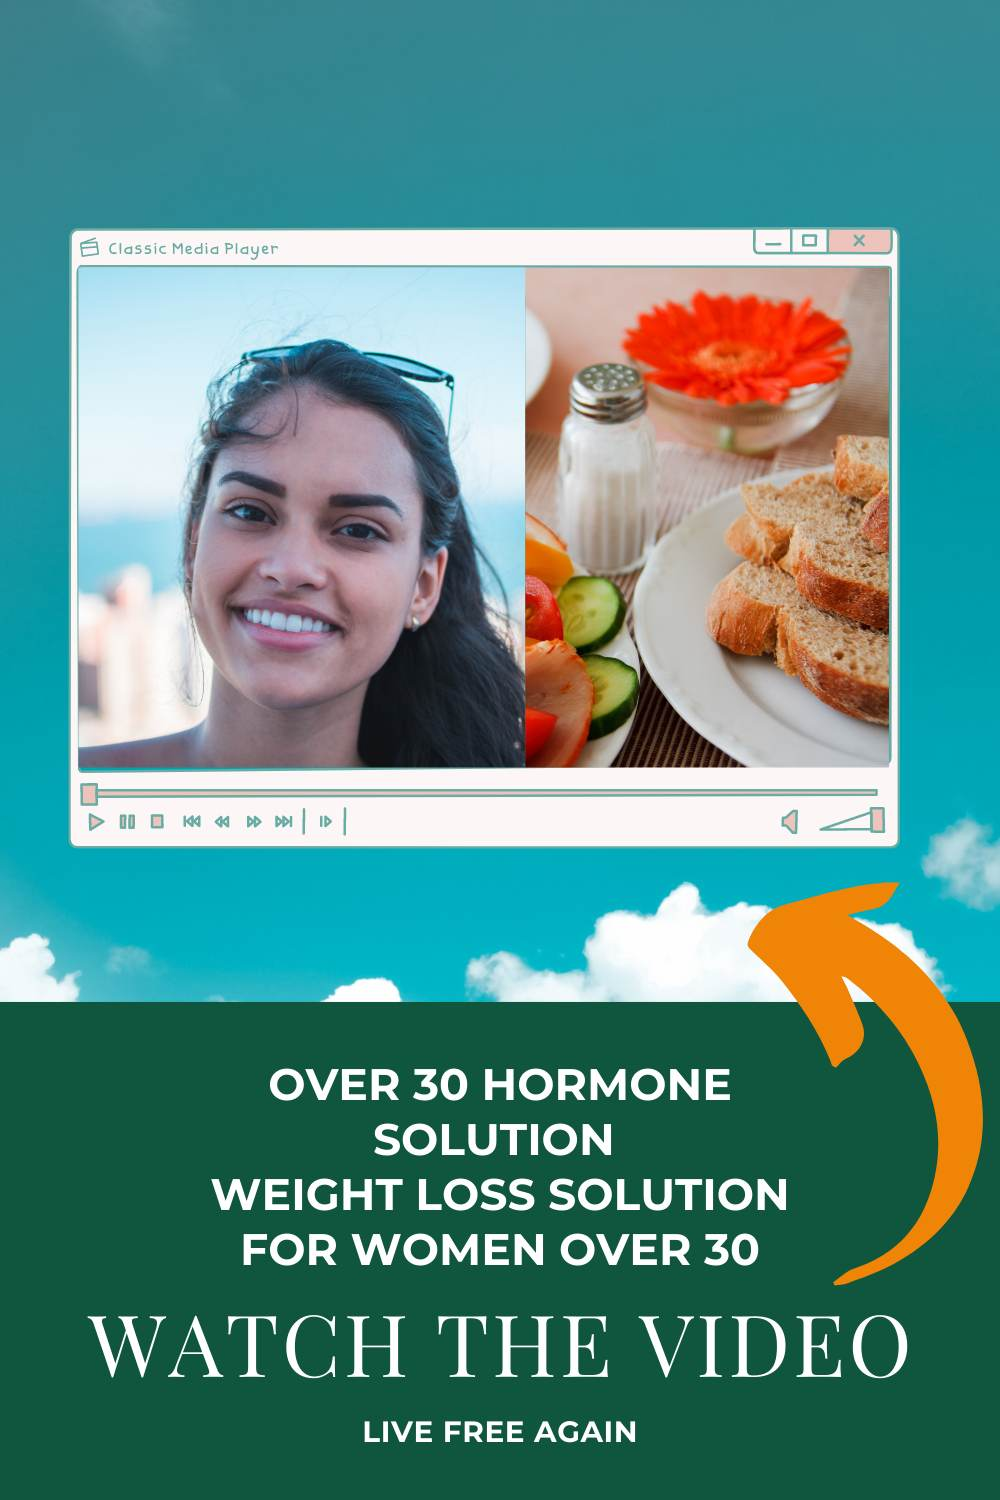 over 30 certified weight loss